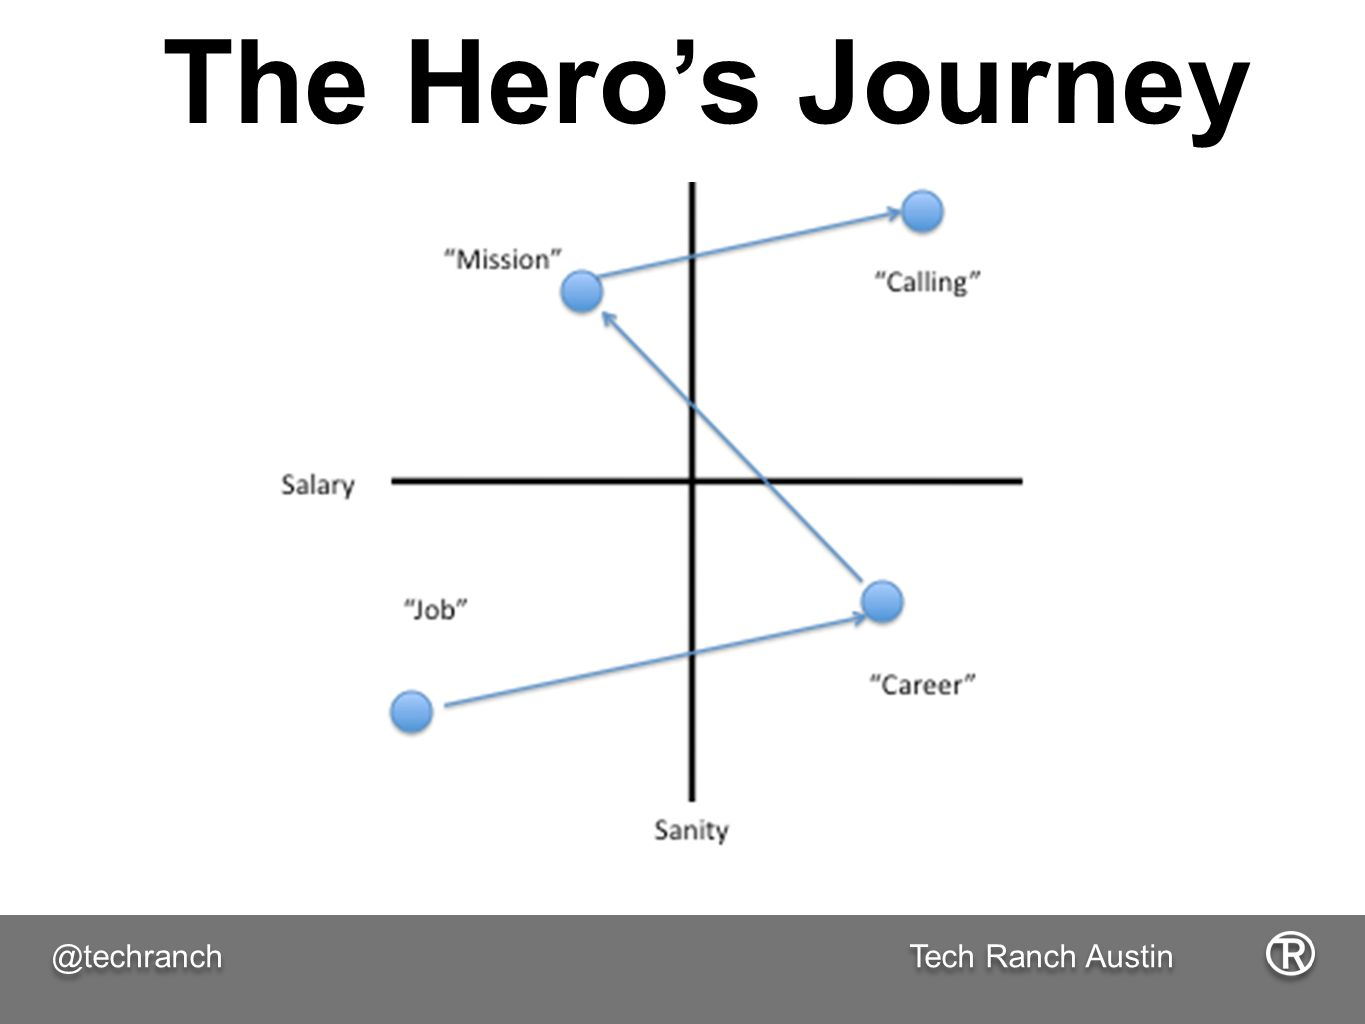 Tech Ranch Austin @techranch The Hero's Journey